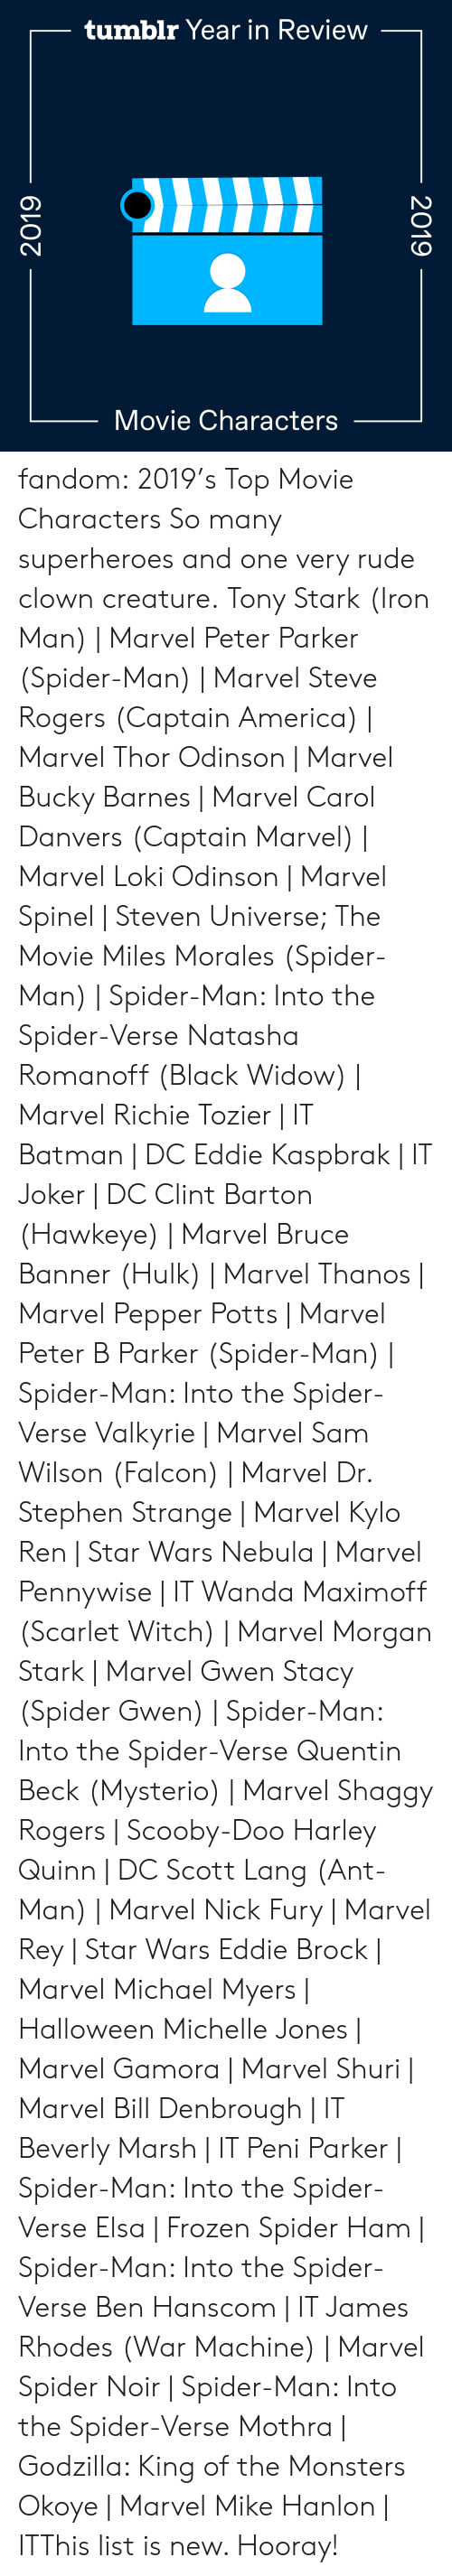 sam: tumblr Year in Review  Movie Characters  2019  2019 fandom:  2019's Top Movie Characters  So many superheroes and one very rude clown creature.  Tony Stark (Iron Man) | Marvel  Peter Parker (Spider-Man) | Marvel  Steve Rogers (Captain America) | Marvel  Thor Odinson | Marvel  Bucky Barnes | Marvel  Carol Danvers (Captain Marvel) | Marvel  Loki Odinson | Marvel  Spinel | Steven Universe; The Movie  Miles Morales (Spider-Man) | Spider-Man: Into the Spider-Verse  Natasha Romanoff (Black Widow) | Marvel  Richie Tozier | IT  Batman | DC  Eddie Kaspbrak | IT  Joker | DC  Clint Barton (Hawkeye) | Marvel  Bruce Banner (Hulk) | Marvel  Thanos | Marvel  Pepper Potts | Marvel  Peter B Parker (Spider-Man) | Spider-Man: Into the Spider-Verse  Valkyrie | Marvel  Sam Wilson (Falcon) | Marvel  Dr. Stephen Strange | Marvel  Kylo Ren | Star Wars  Nebula | Marvel  Pennywise | IT  Wanda Maximoff (Scarlet Witch) | Marvel  Morgan Stark | Marvel  Gwen Stacy (Spider Gwen) | Spider-Man: Into the Spider-Verse  Quentin Beck (Mysterio) | Marvel  Shaggy Rogers | Scooby-Doo  Harley Quinn | DC  Scott Lang (Ant-Man) | Marvel  Nick Fury | Marvel  Rey | Star Wars  Eddie Brock | Marvel  Michael Myers | Halloween  Michelle Jones | Marvel  Gamora | Marvel  Shuri | Marvel  Bill Denbrough | IT  Beverly Marsh | IT  Peni Parker | Spider-Man: Into the Spider-Verse  Elsa | Frozen  Spider Ham | Spider-Man: Into the Spider-Verse  Ben Hanscom | IT  James Rhodes (War Machine) | Marvel  Spider Noir | Spider-Man: Into the Spider-Verse  Mothra | Godzilla: King of the Monsters  Okoye | Marvel Mike Hanlon | ITThis list is new. Hooray!